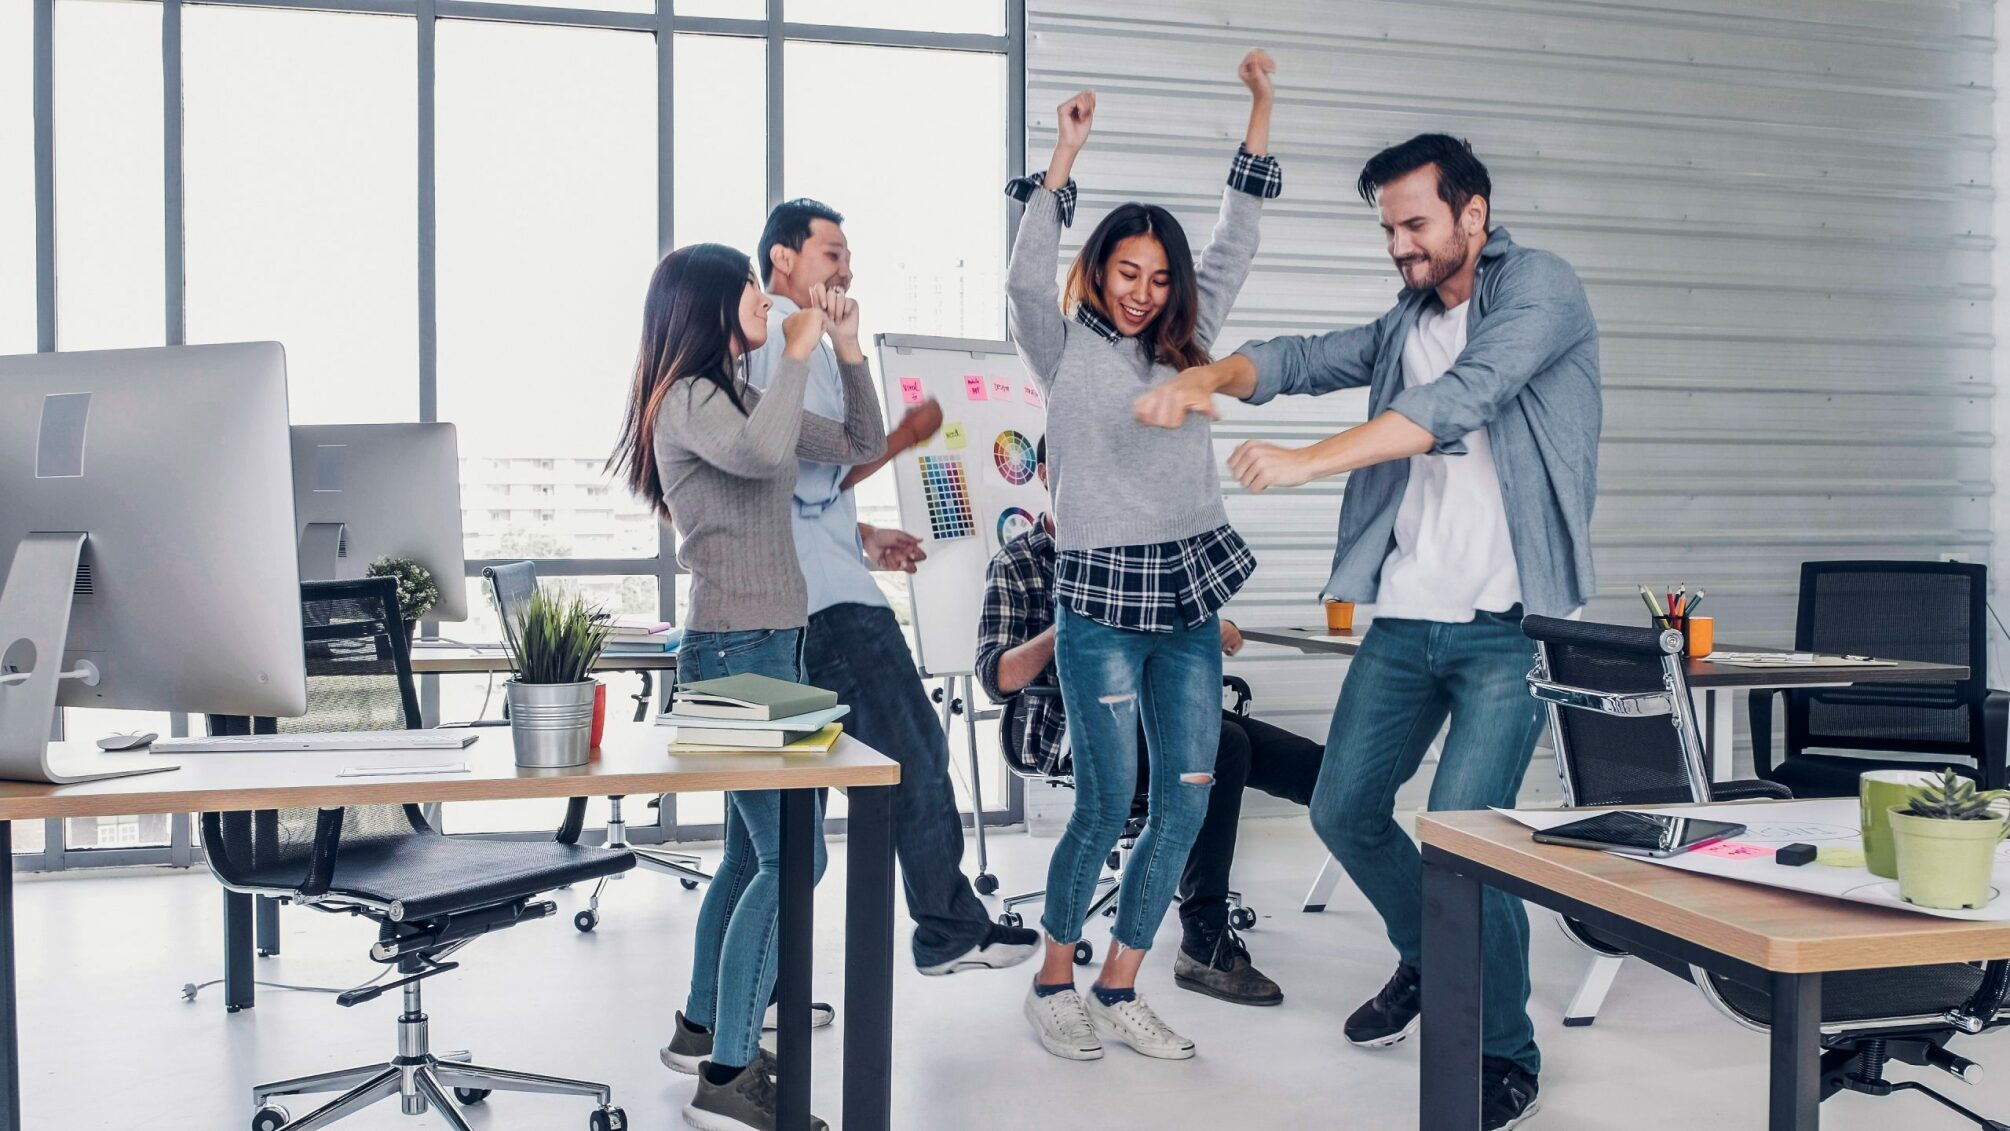 Digitalbyrå i Stockholm - group of creative designer dancing in office with relax feeling and glad about good success news of project at modern office.business day work lifestyle.